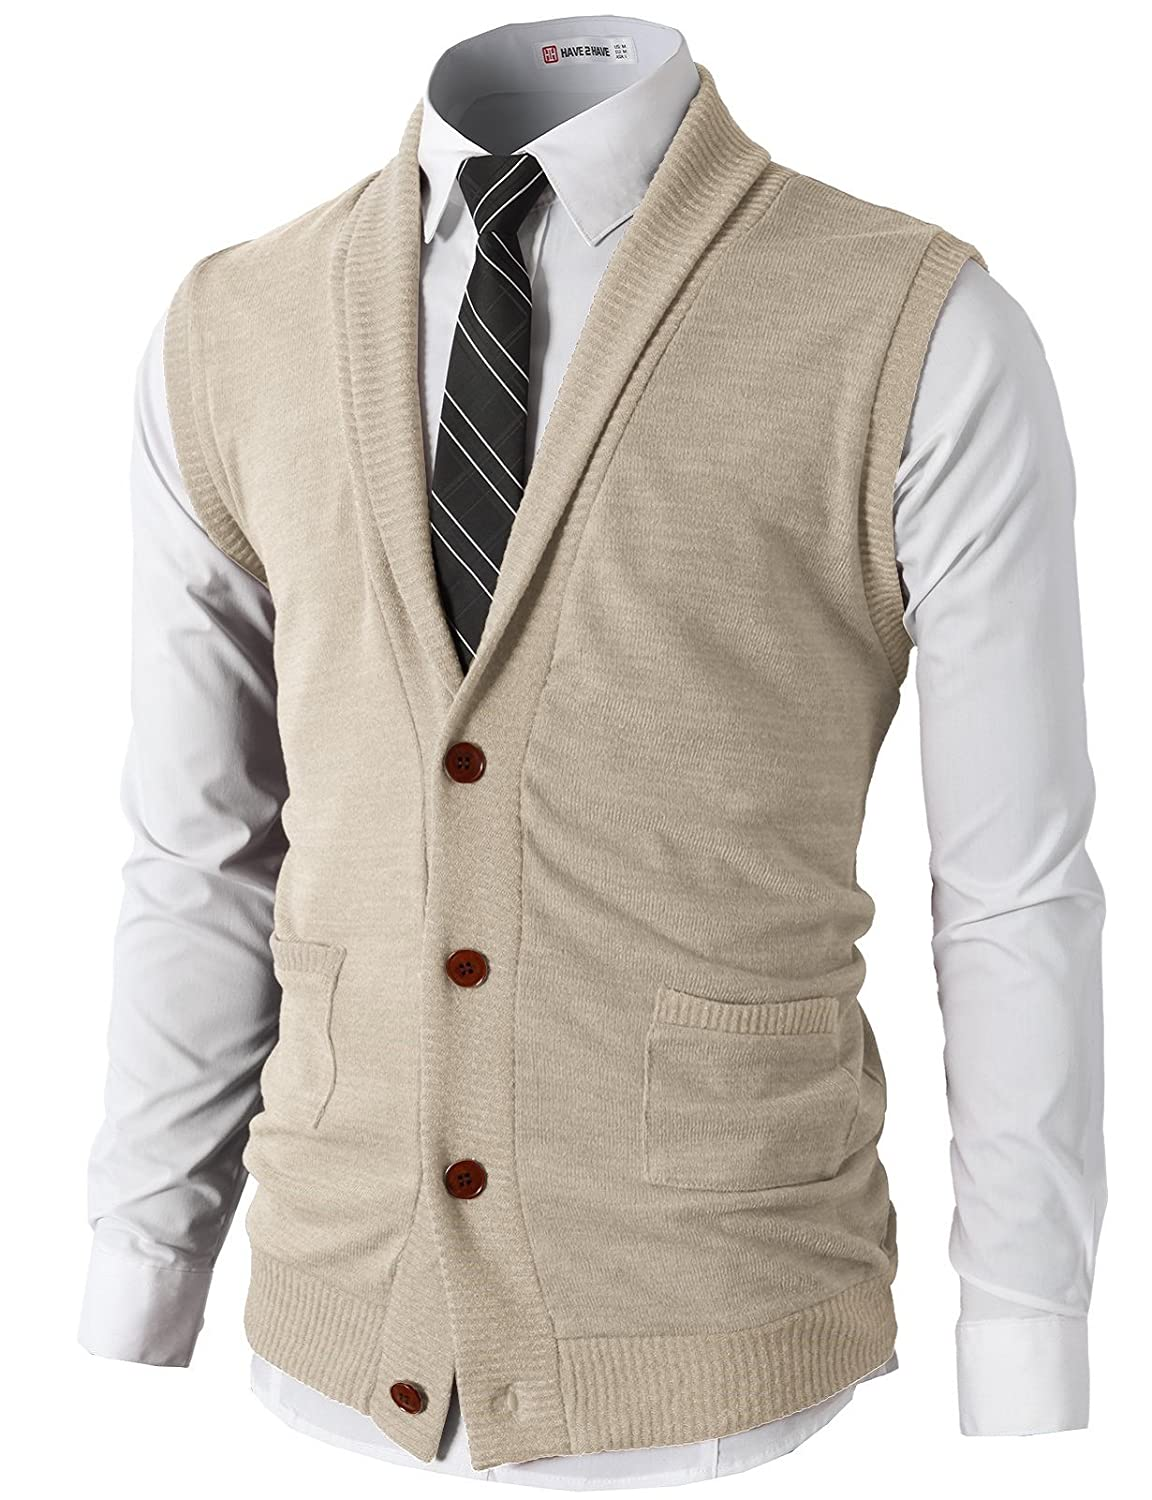 H2H Mens Casual Slim Fit Kniited Sweater Vests V-Neck Button-Down Shawl Collar Pockets #CMOV034